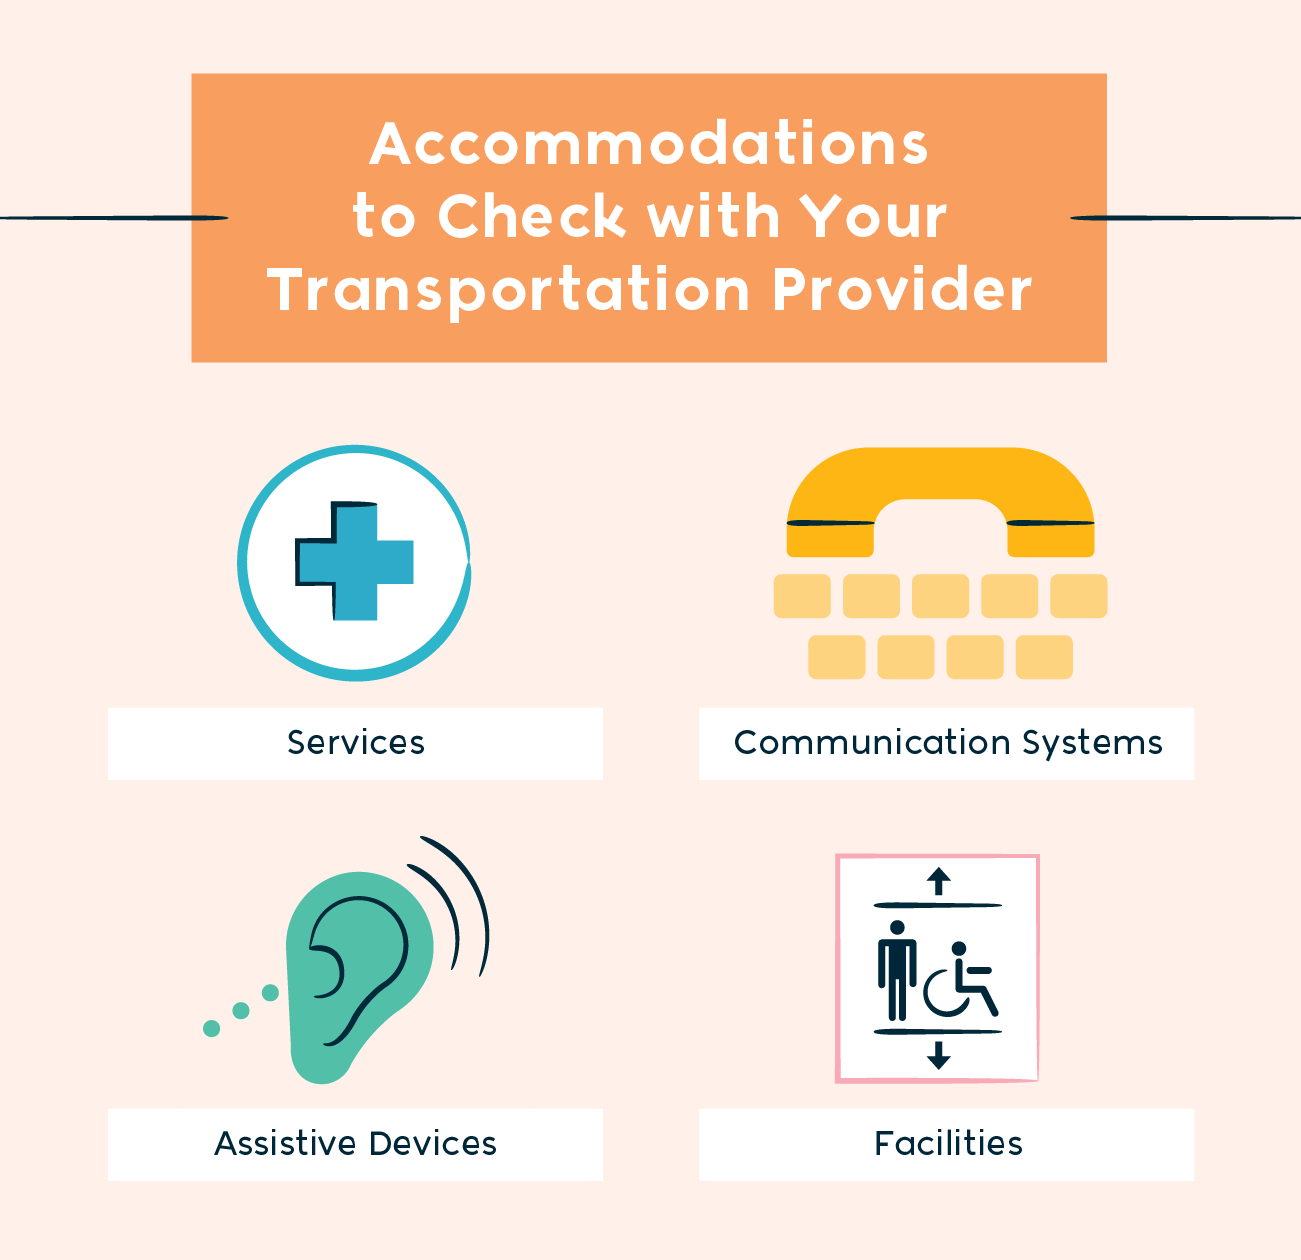 accommodations to check with your transportation provider